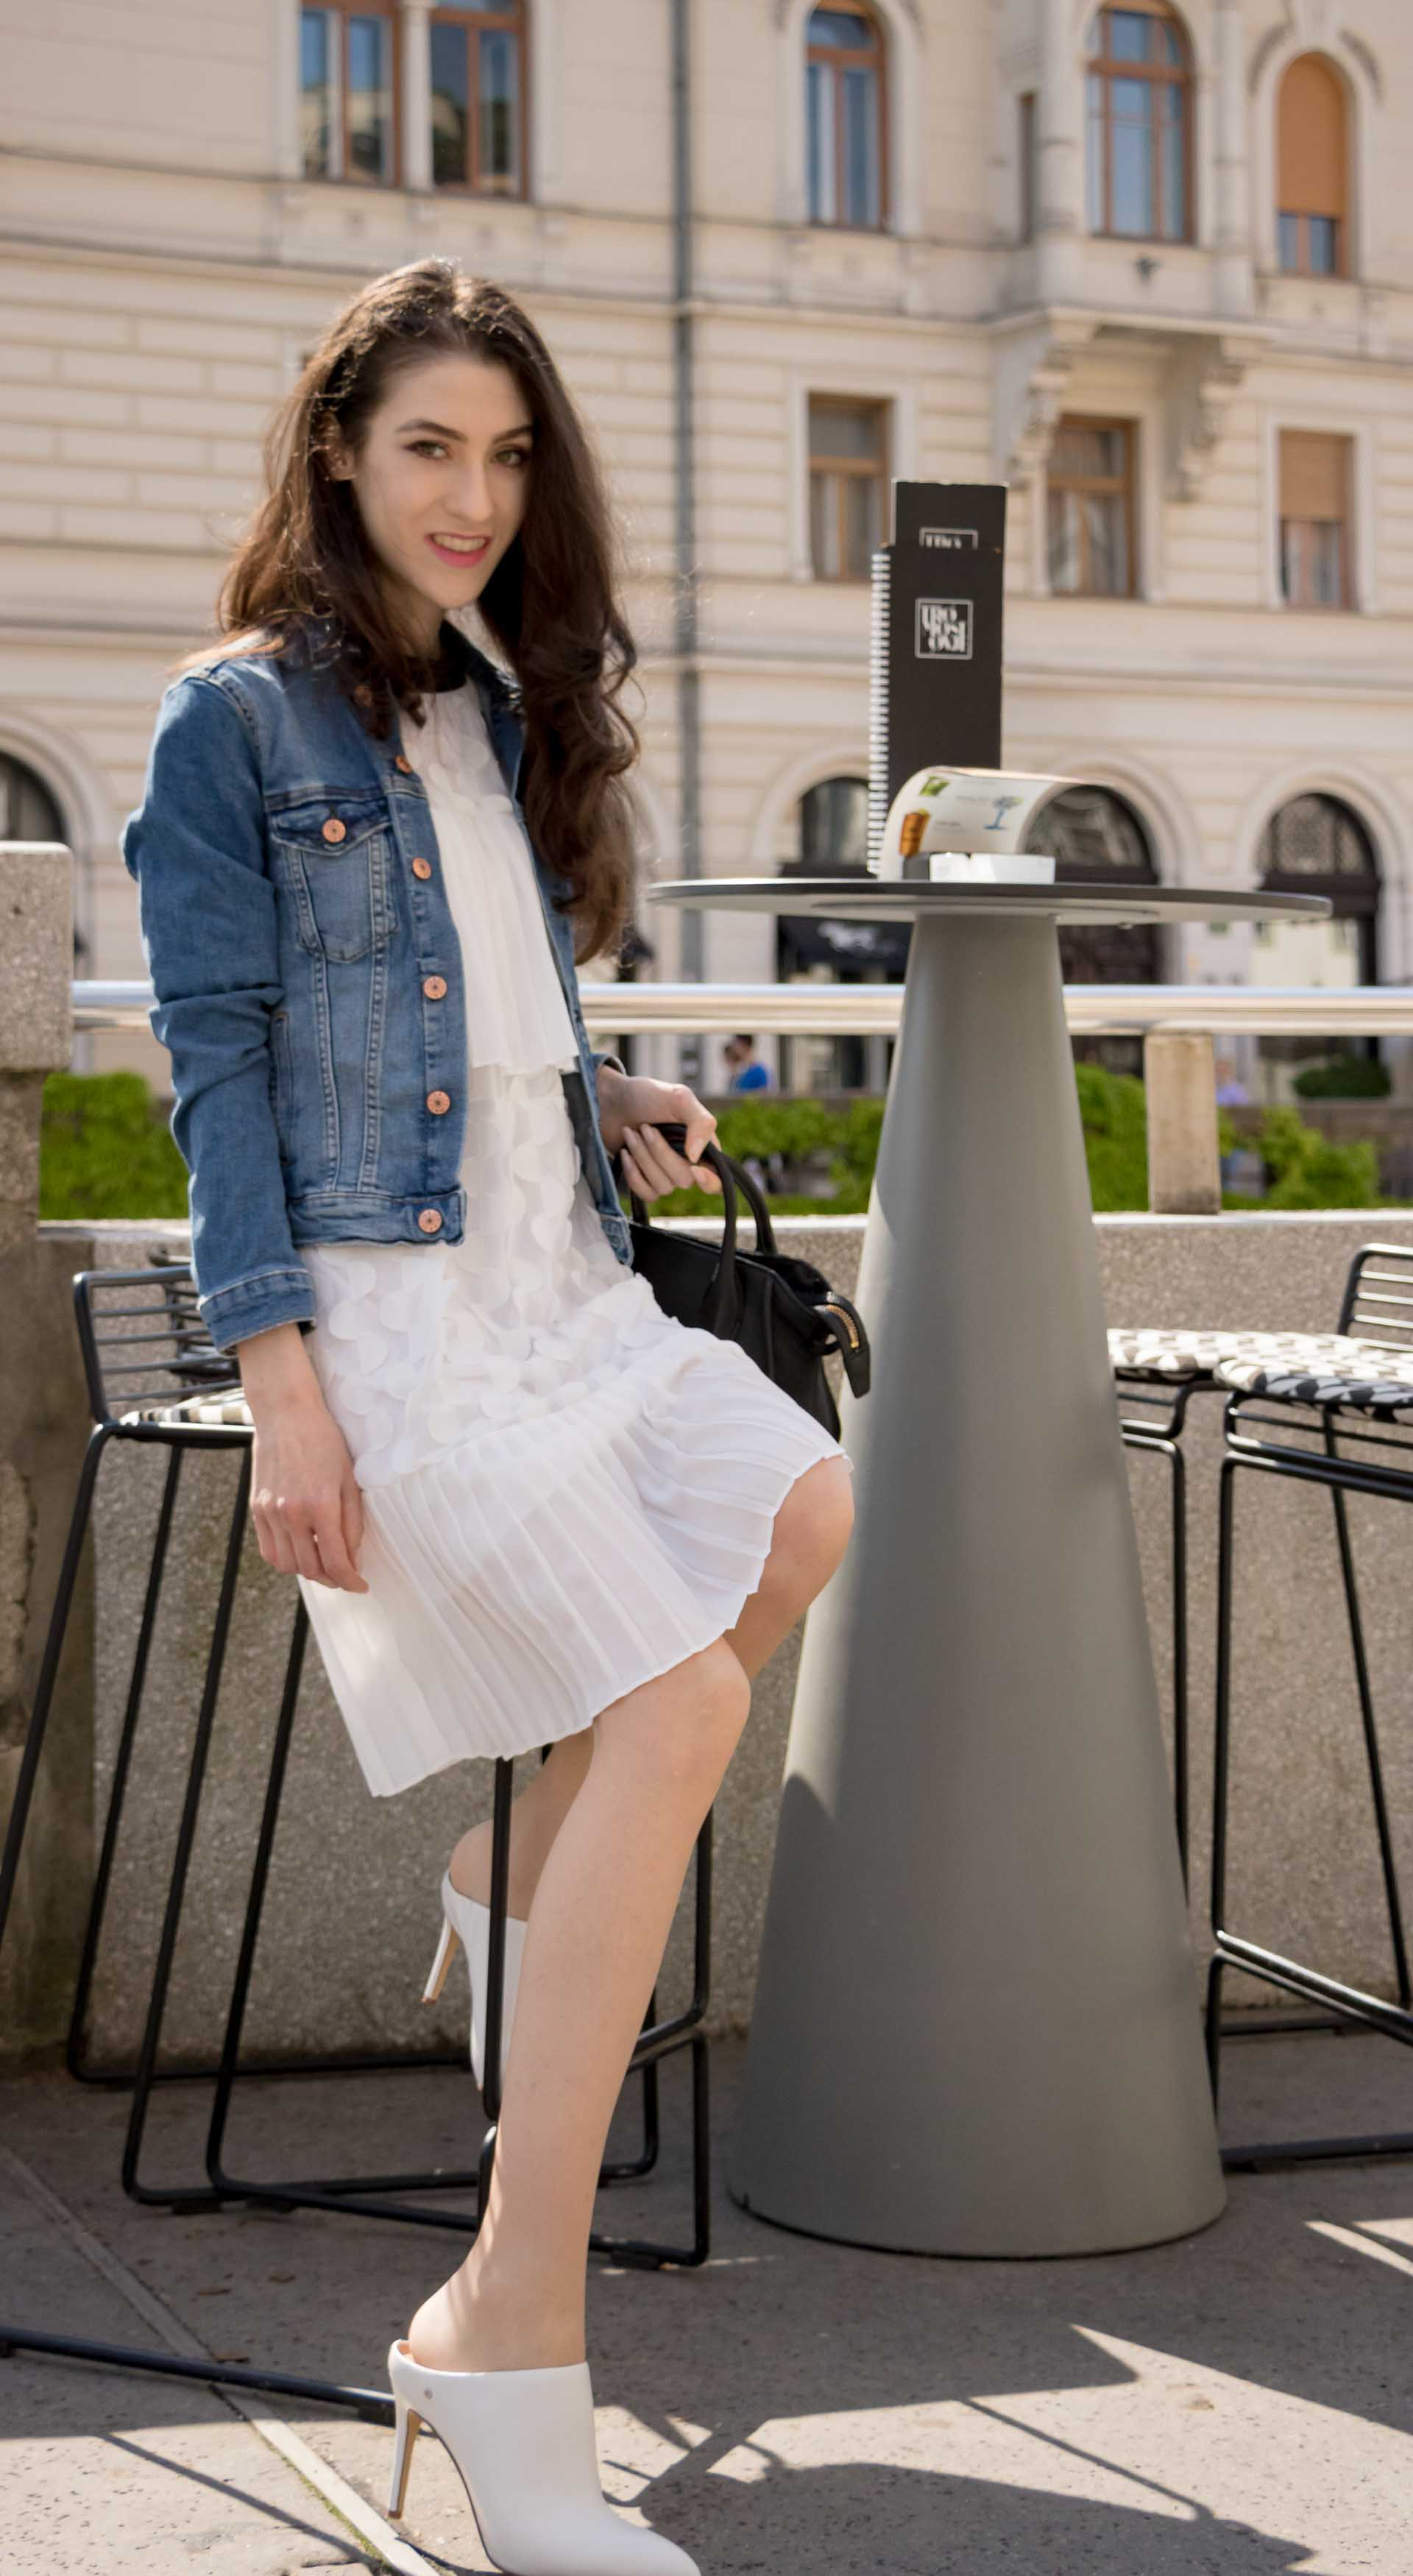 Veronika Lipar Fashion Editor of Brunette from Wall Street dressed in H&M blue denim jacket, Storets white pleated short dress, white mules and Adam Selman x Le Specs white cat eye Lolita sunglasses, black small bag getting up from the stool